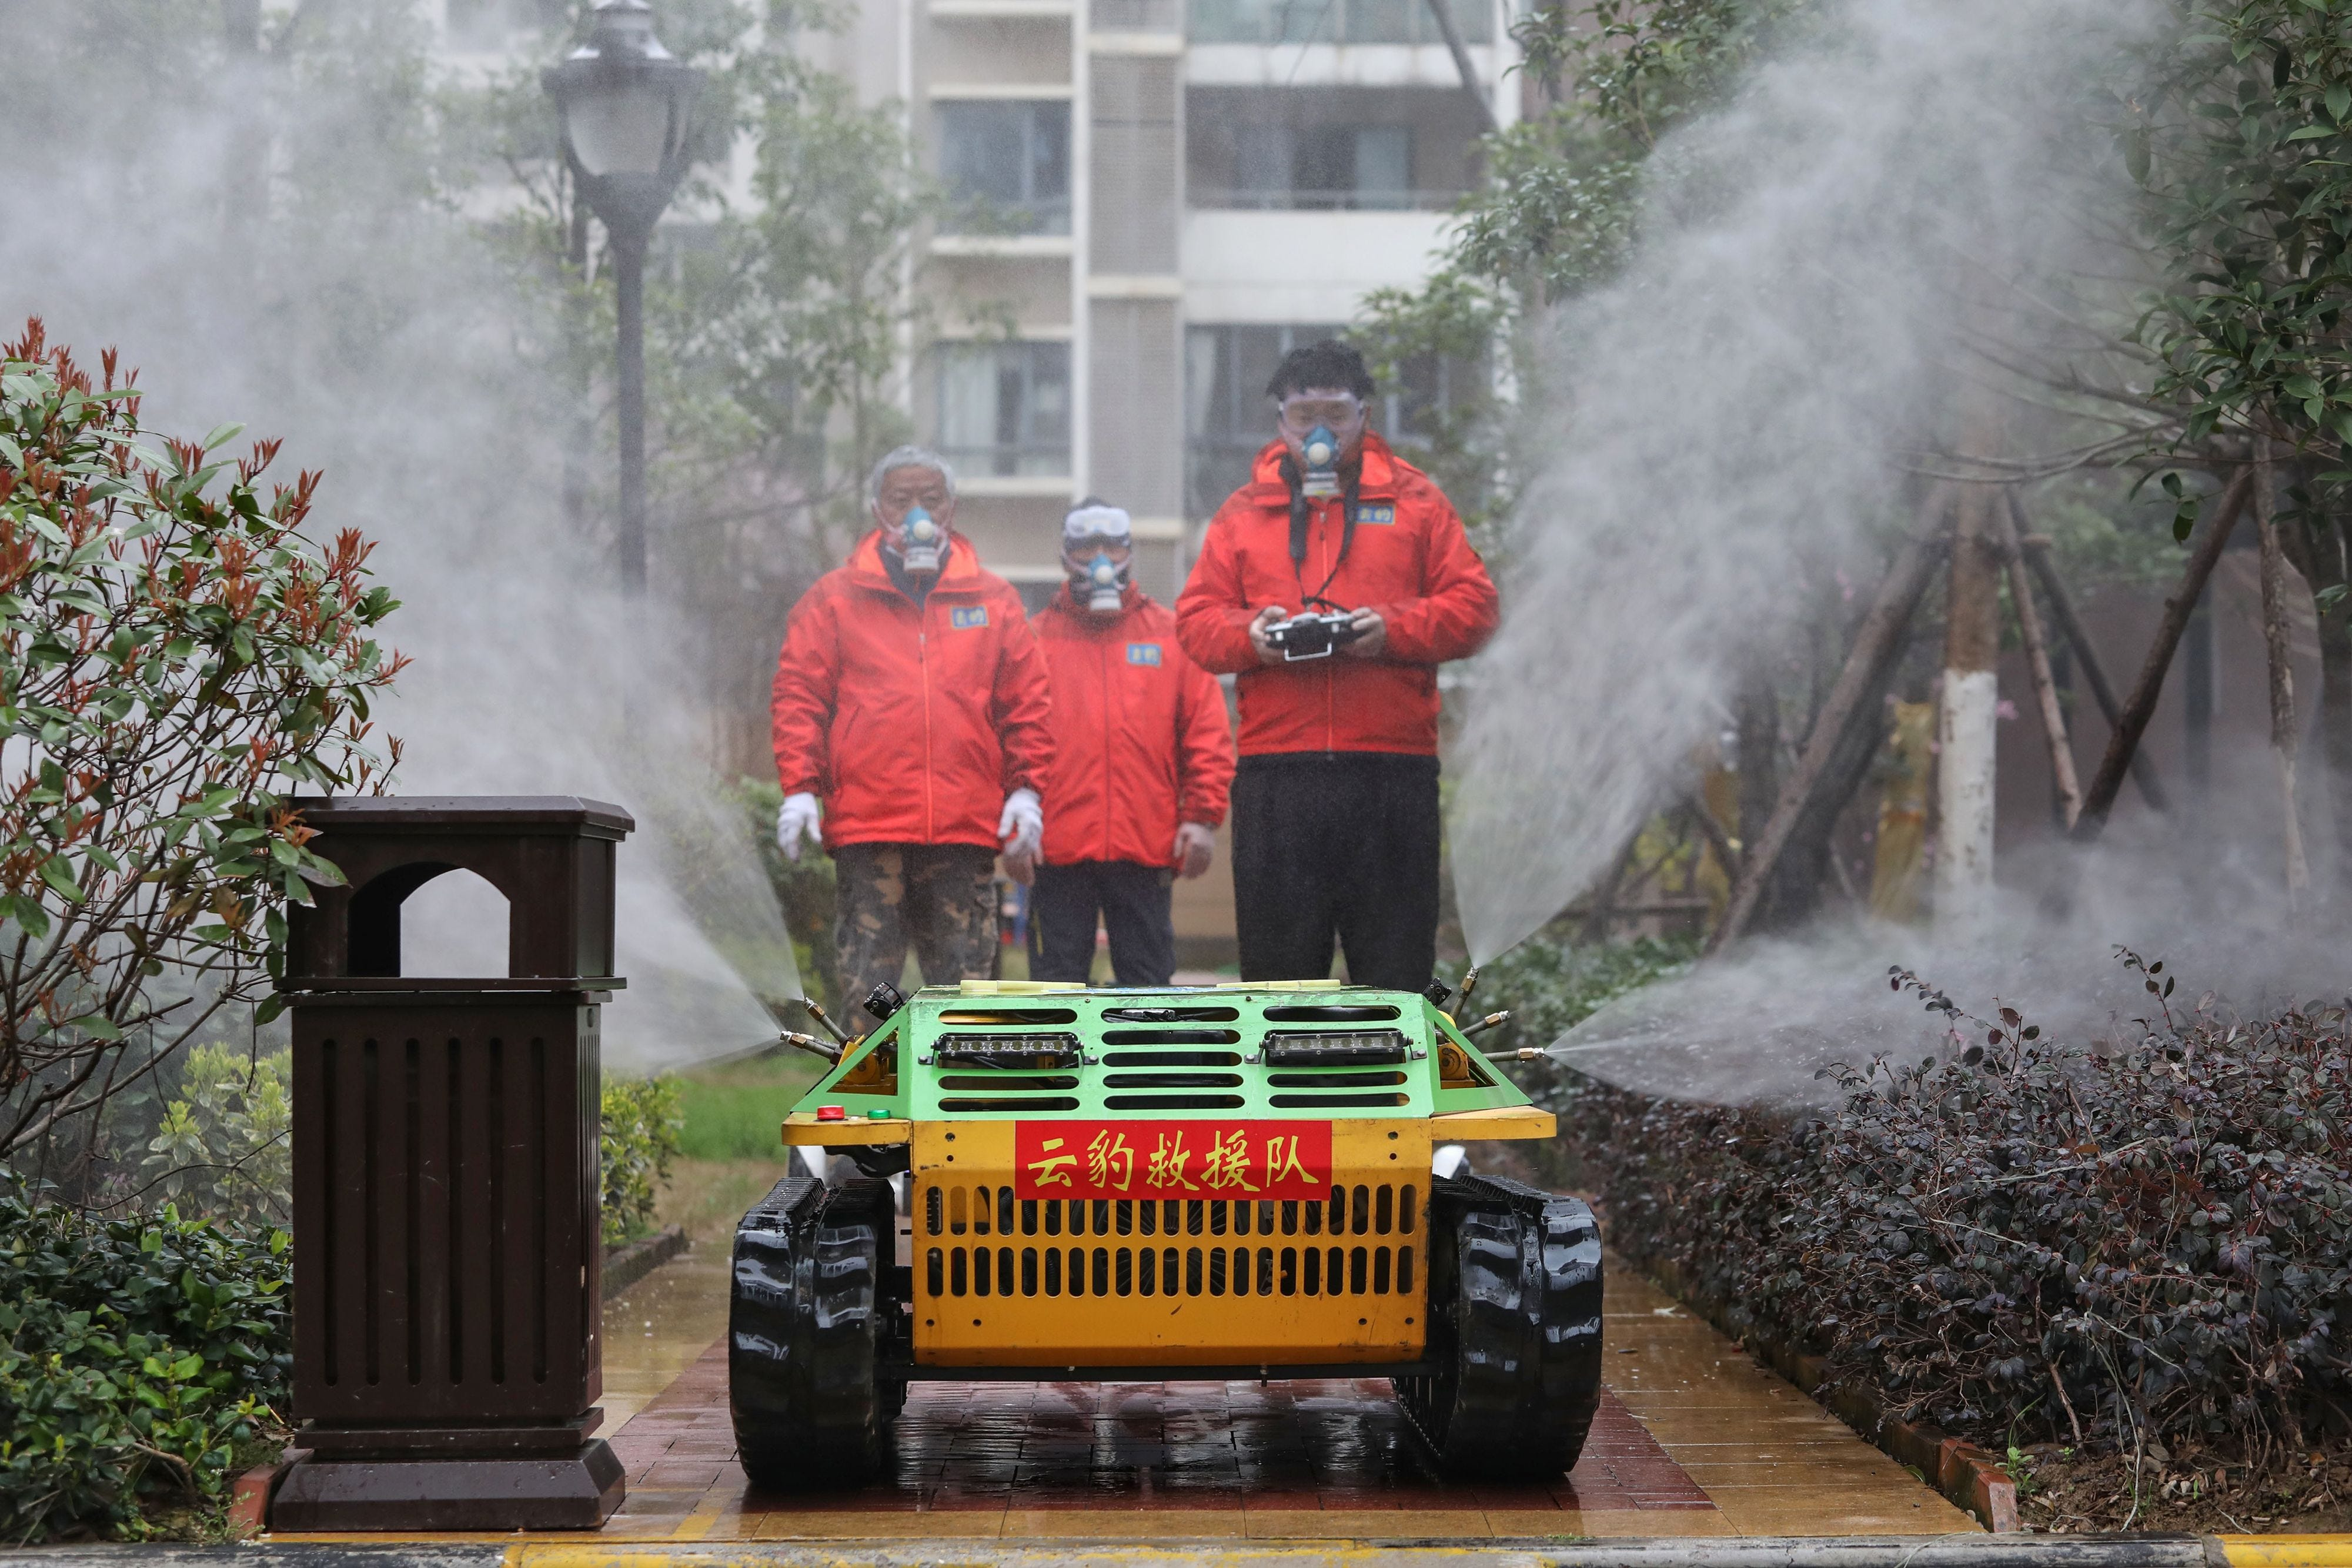 Slide 90 of 113: Volunteers spray disinfectant with a robot at a residental area in Wuhan in China's central Hubei province on March 3, 2020. The world has entered uncharted territory in its battle against the deadly coronavirus, the UN health agency warned, as new infections dropped dramatically in China on March 3 but surged abroad with the US death toll rising to six.